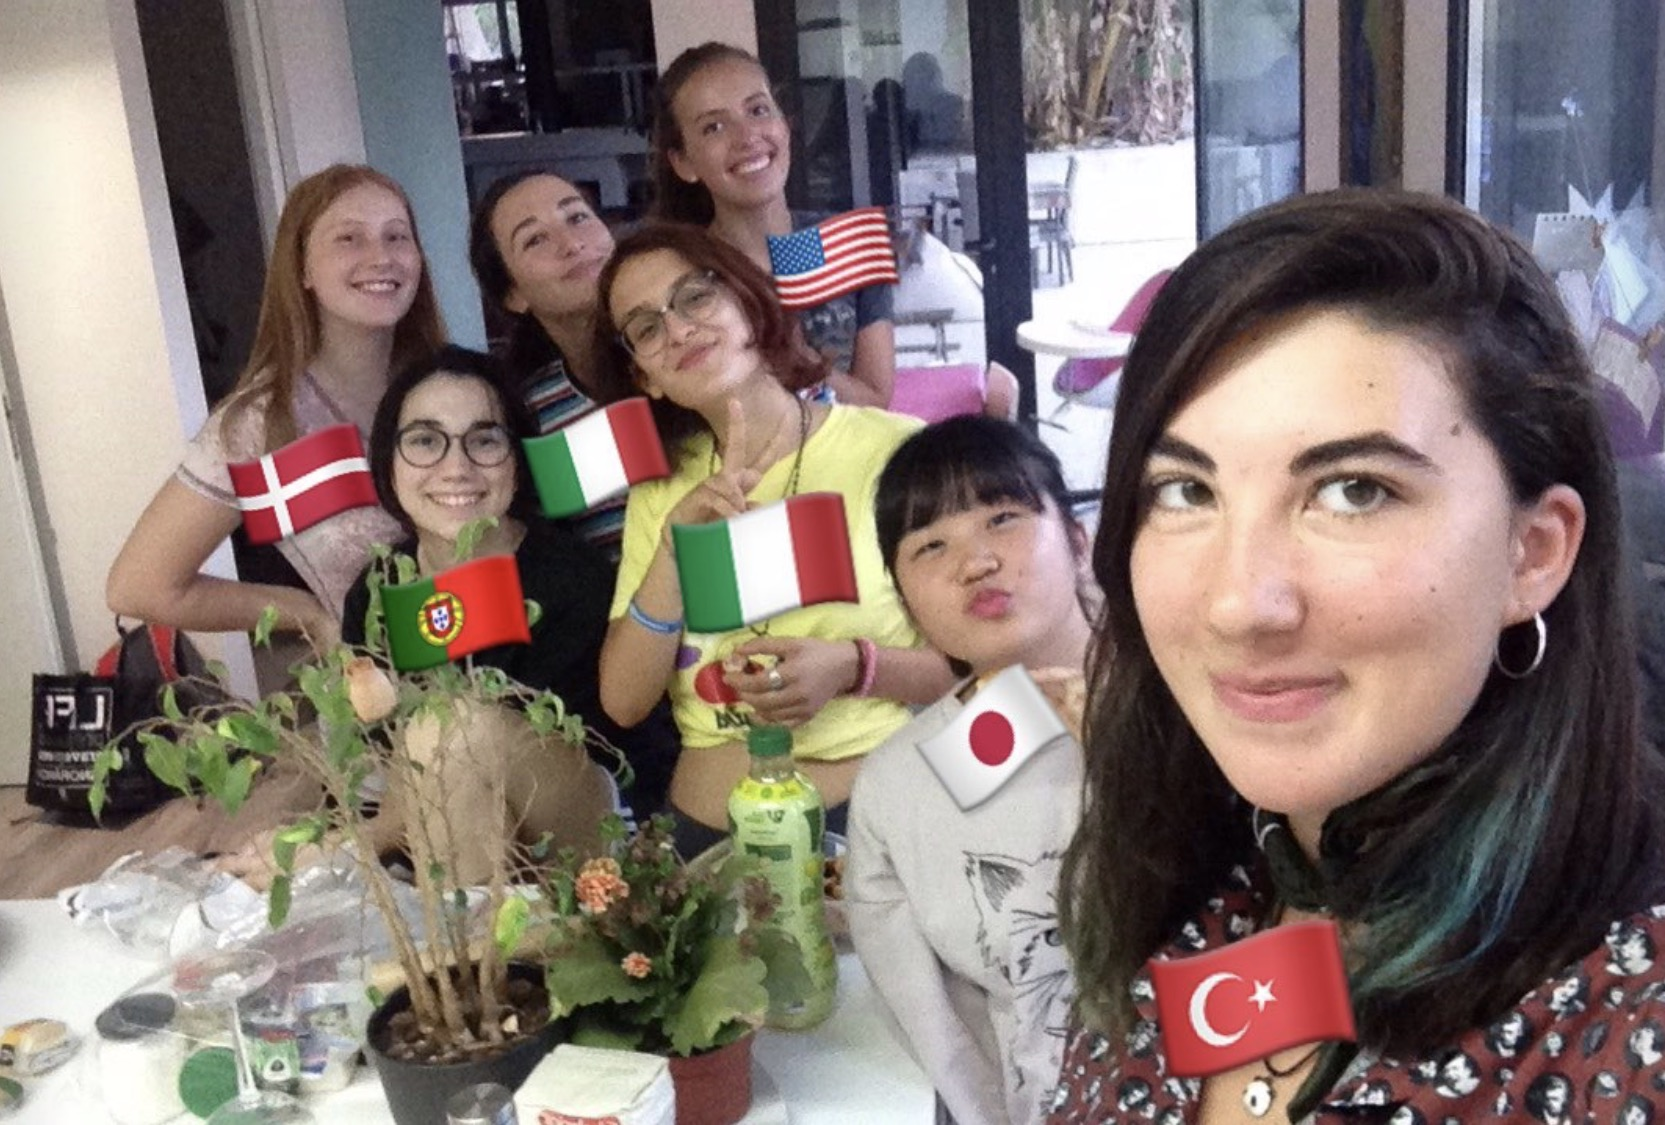 """My exchange friends and I! Irem from Turkey, Ayaka from Japan, Viola & Roberta from Italy, Anna-Sofie from Denmark and Ana from Portugal. We had an """"intercultural dinner"""", so we each made a different dish from our countries. I had to make chocolate chip cookies, they've always been my go-to here!"""